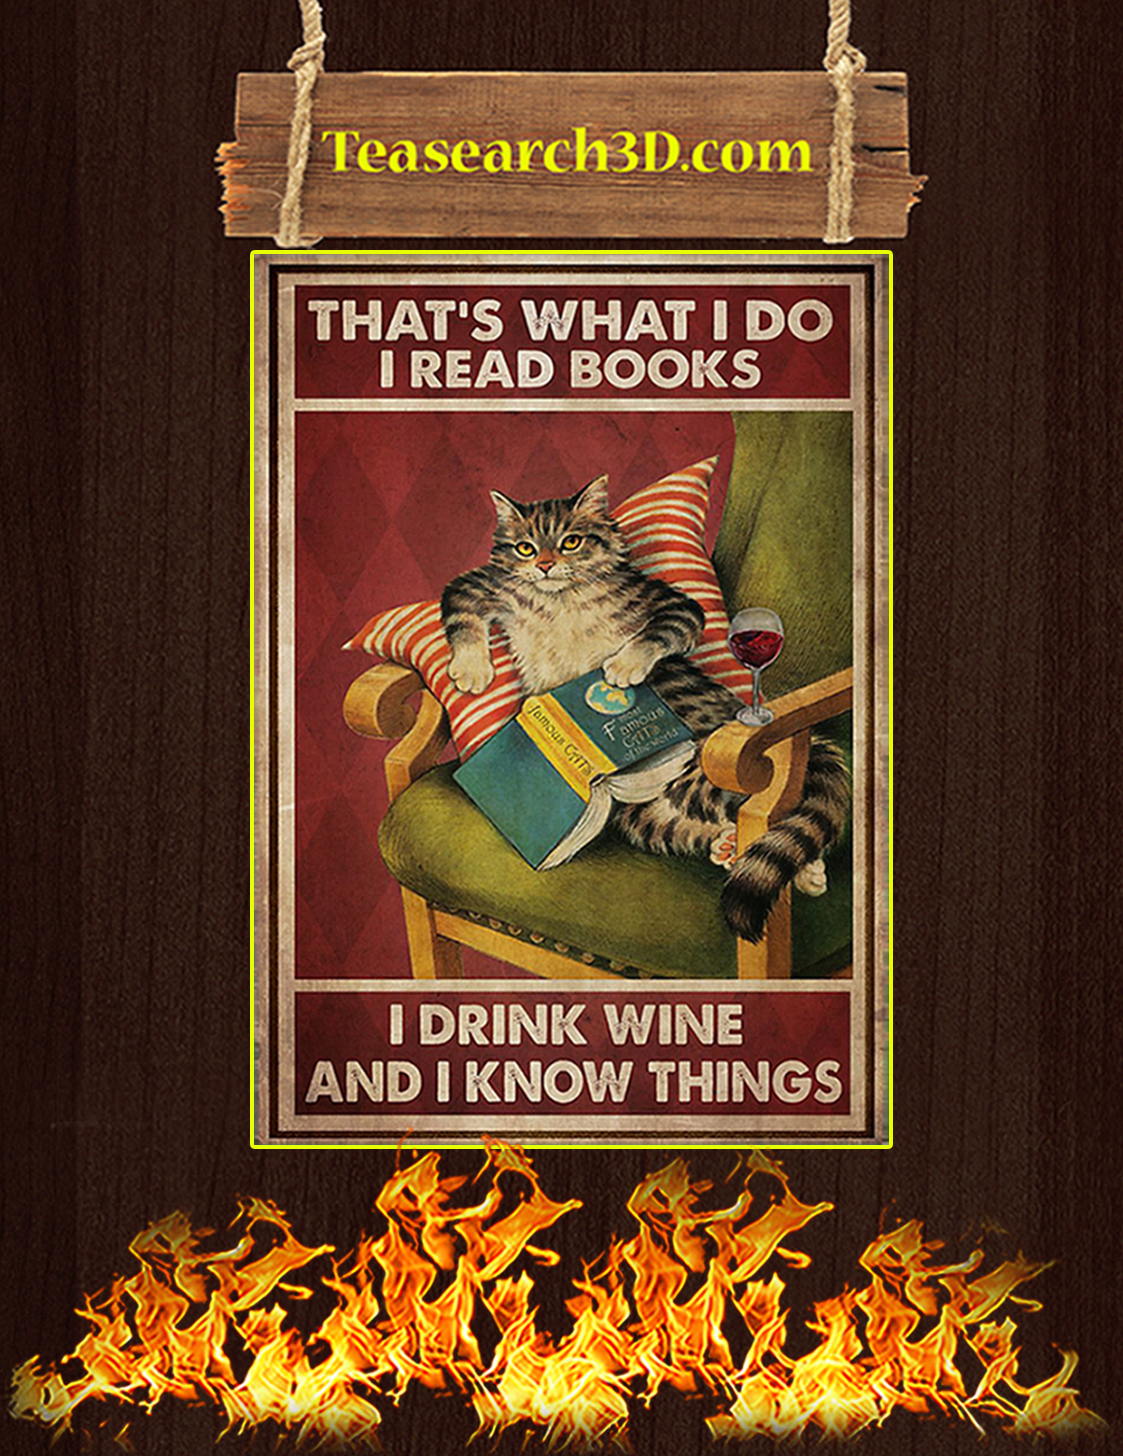 That's what I do I read books I drink wine and I know things cat poster A3